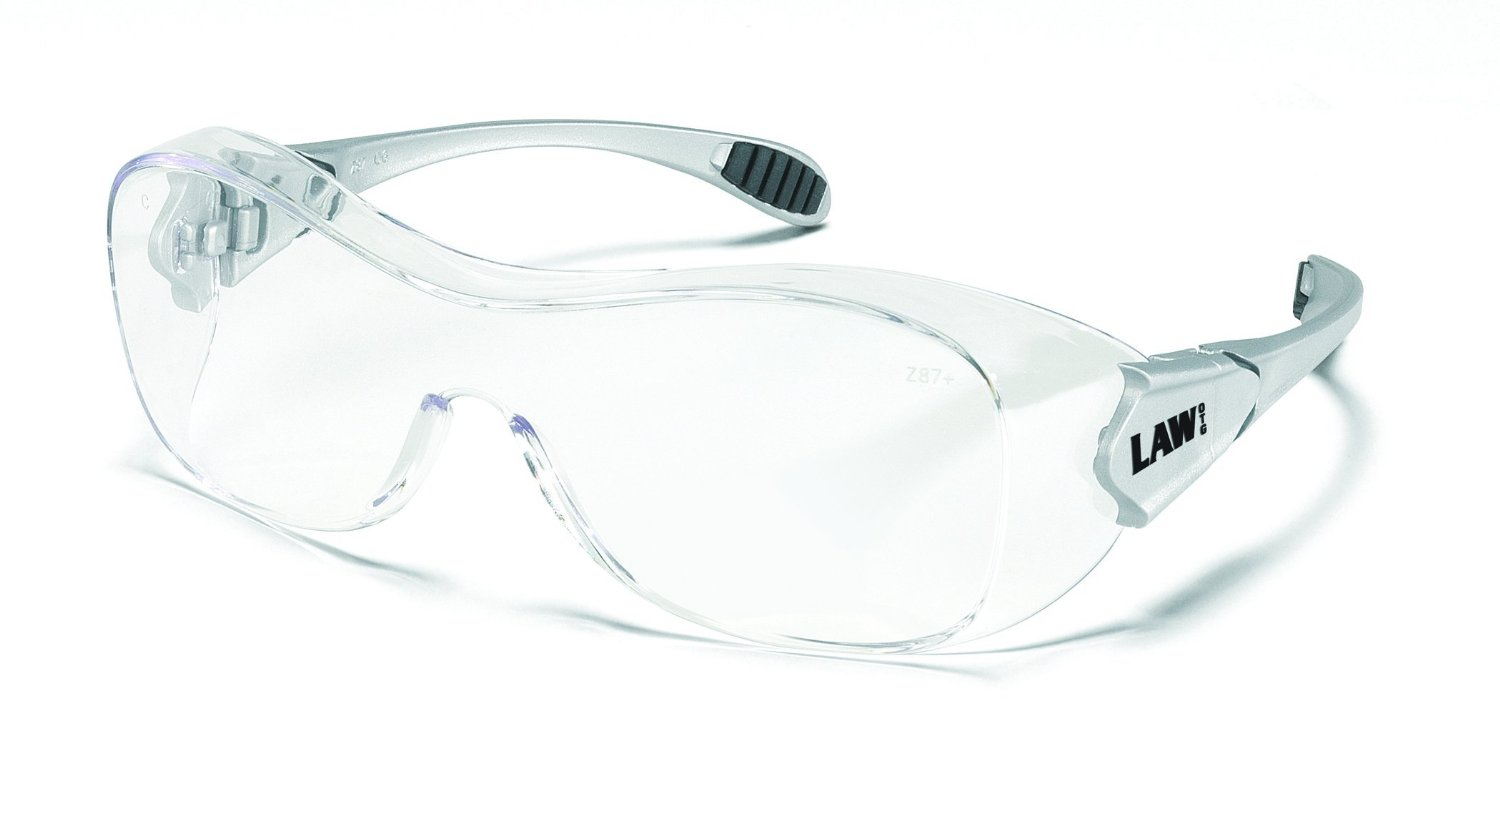 Crews OG110AF Law Over Glasses Clear Anti-Fog Safety Glasses with Hybrid Black Temple Sleeve